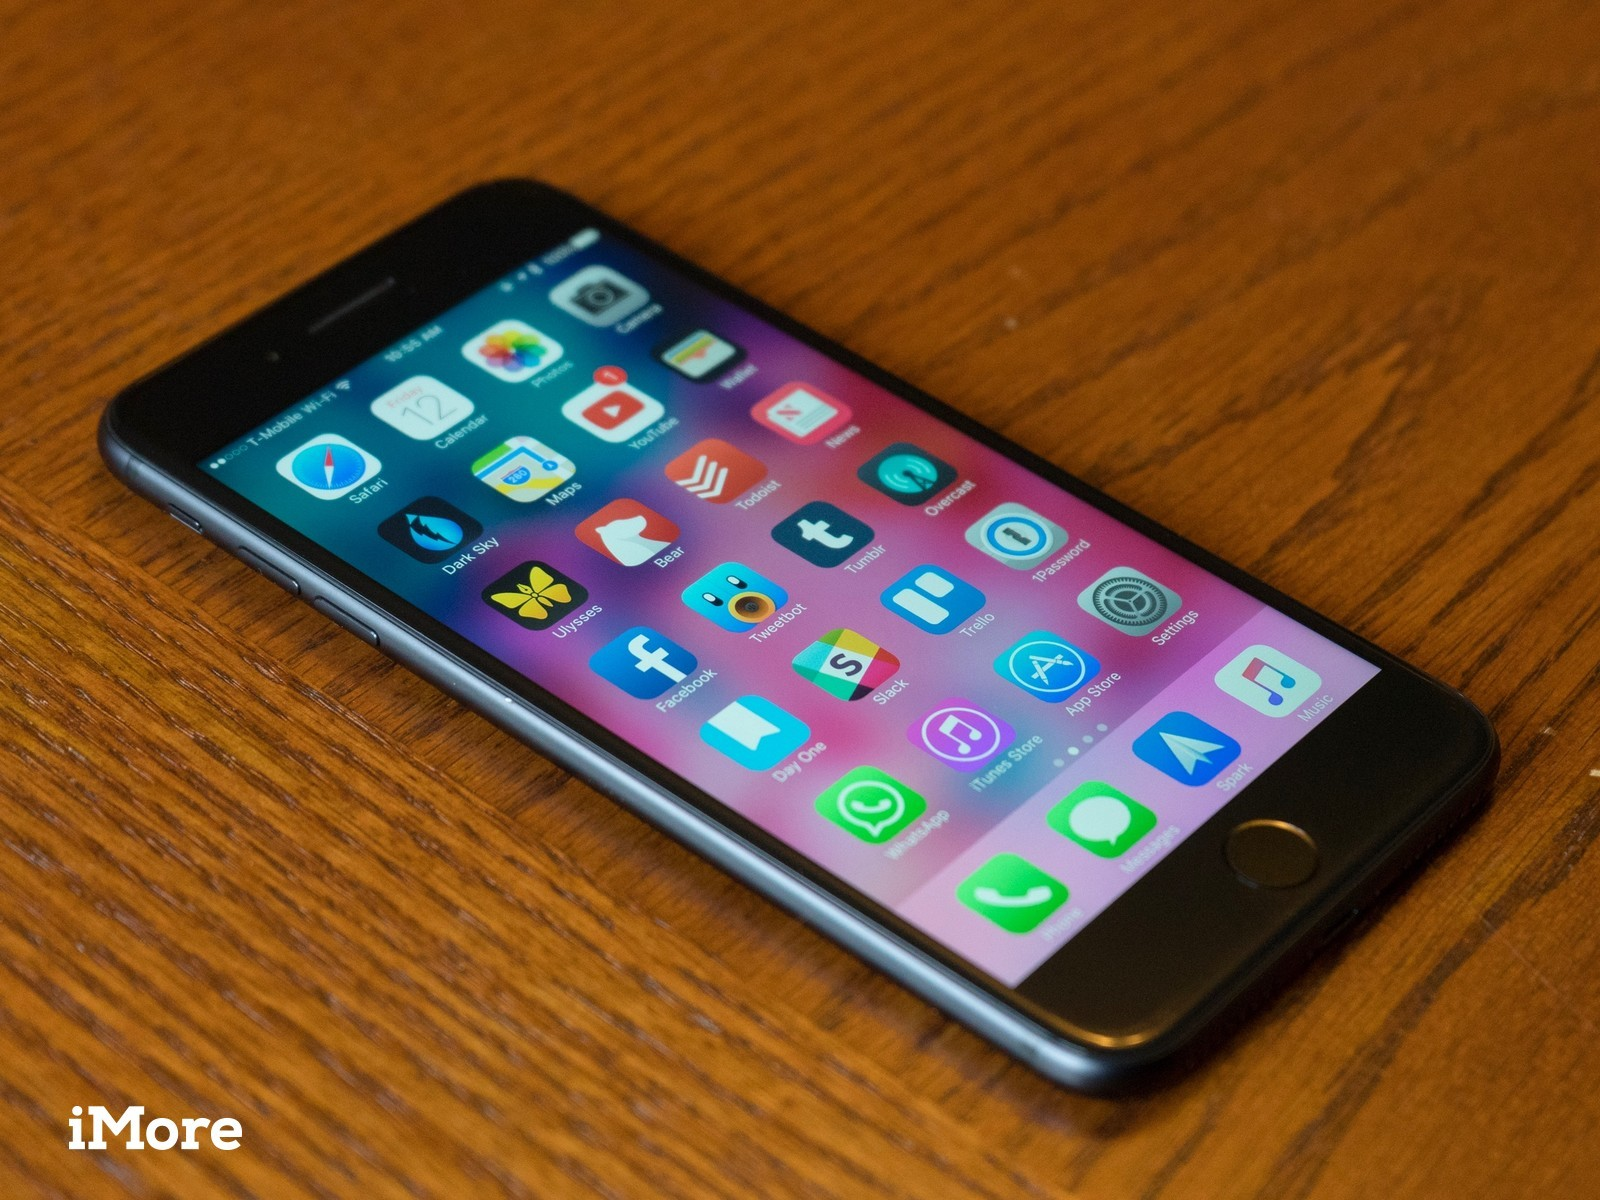 Ios 12 rumor roundup what39s coming next imore for Iphone 5 features friday rumor roundup